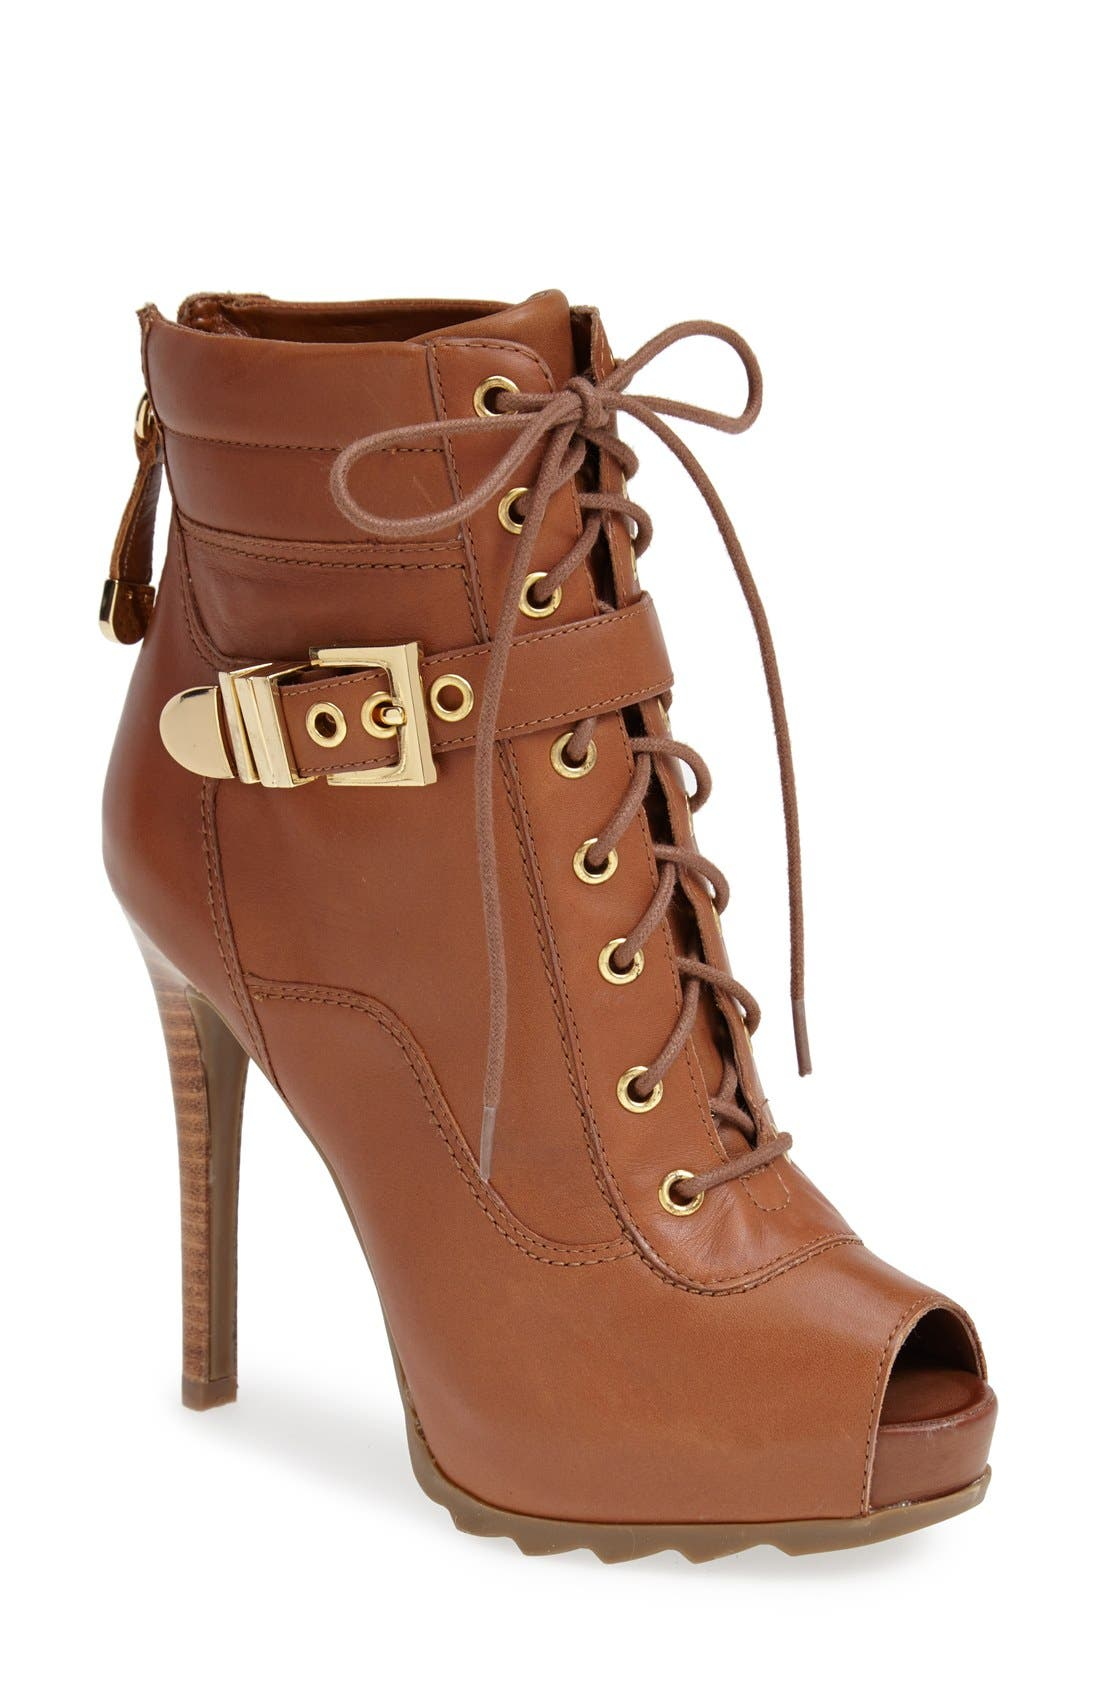 Alternate Image 1 Selected - GUESS 'Bieinda' Peep Toe Lace-Up Bootie (Women)